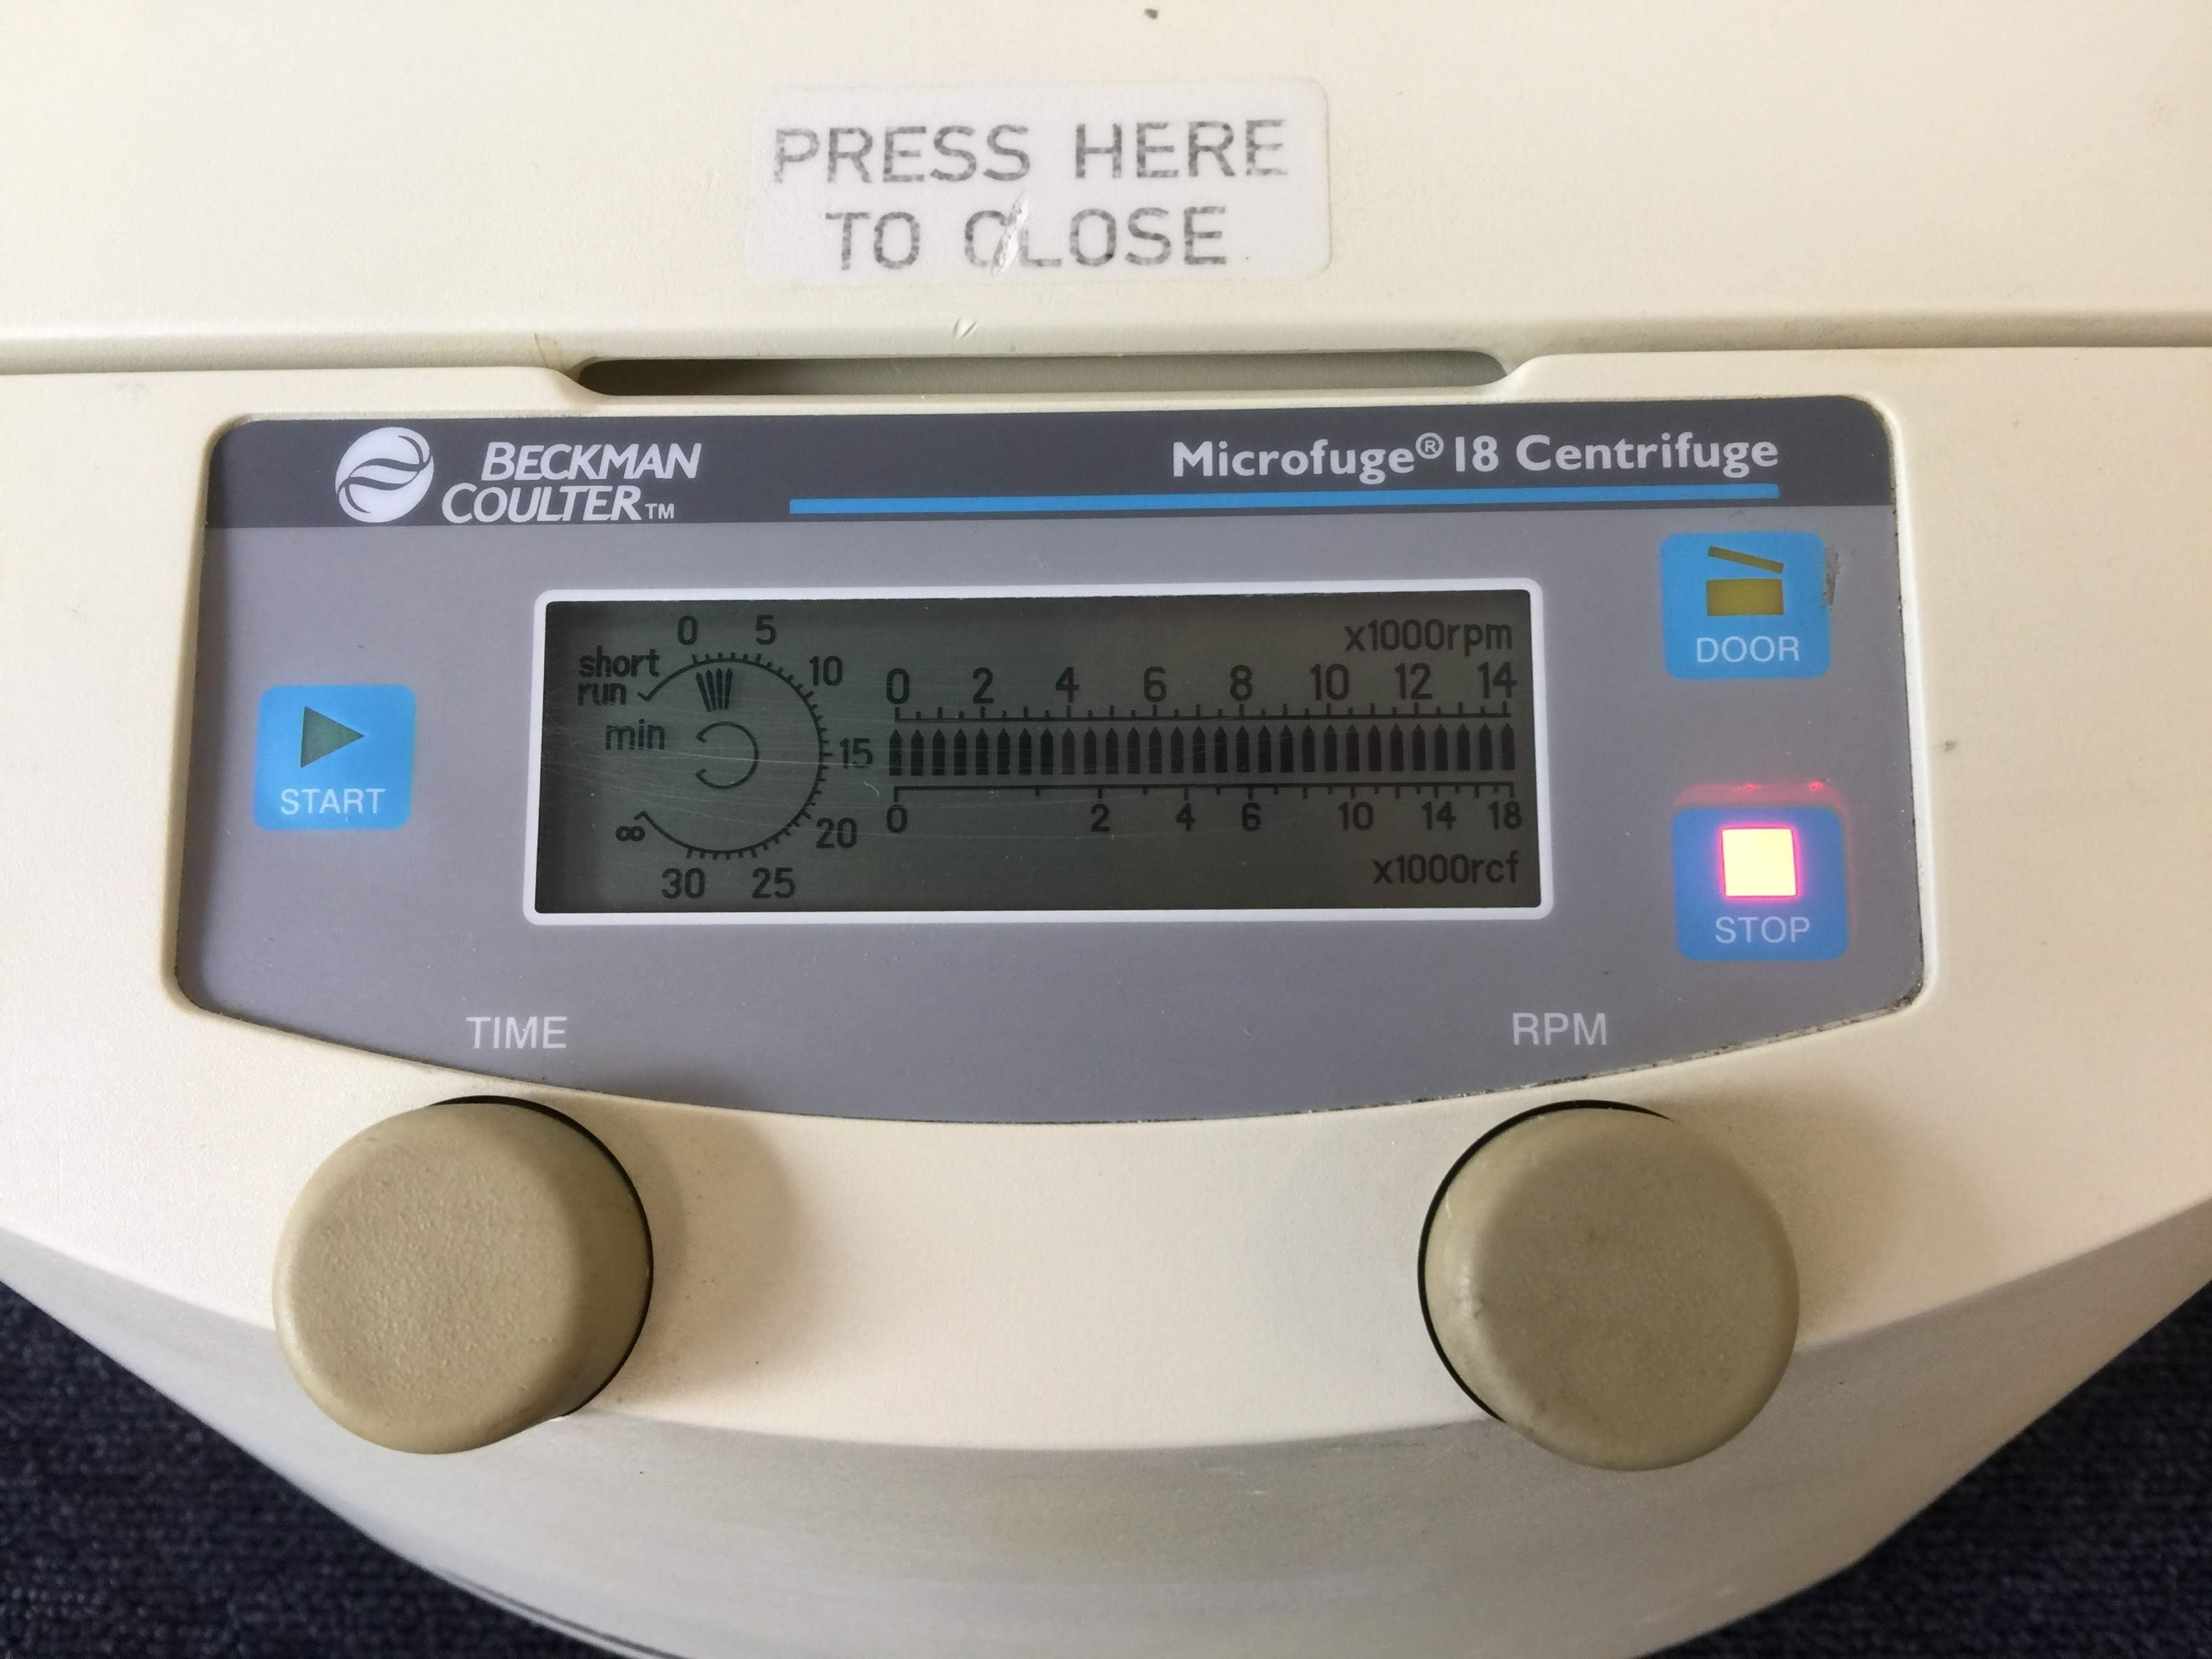 Beckman Coulter Microfuge 18 Centrifuge with Digital Screen